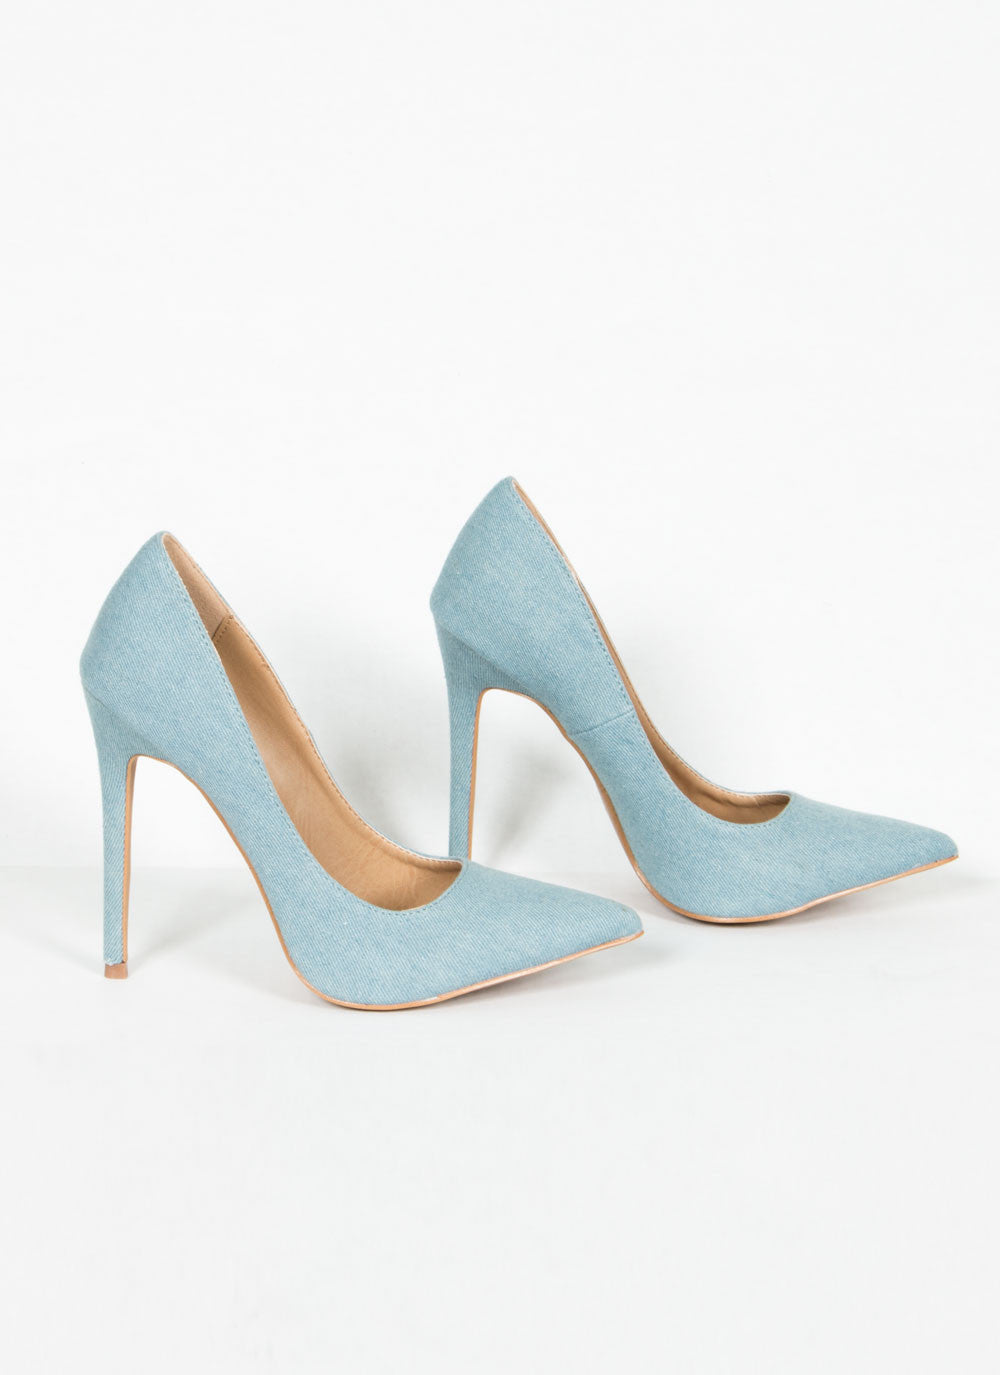 Blue Denim Pumps 5.5, Heel - Fashion Trend LA, Fashion Trend LA